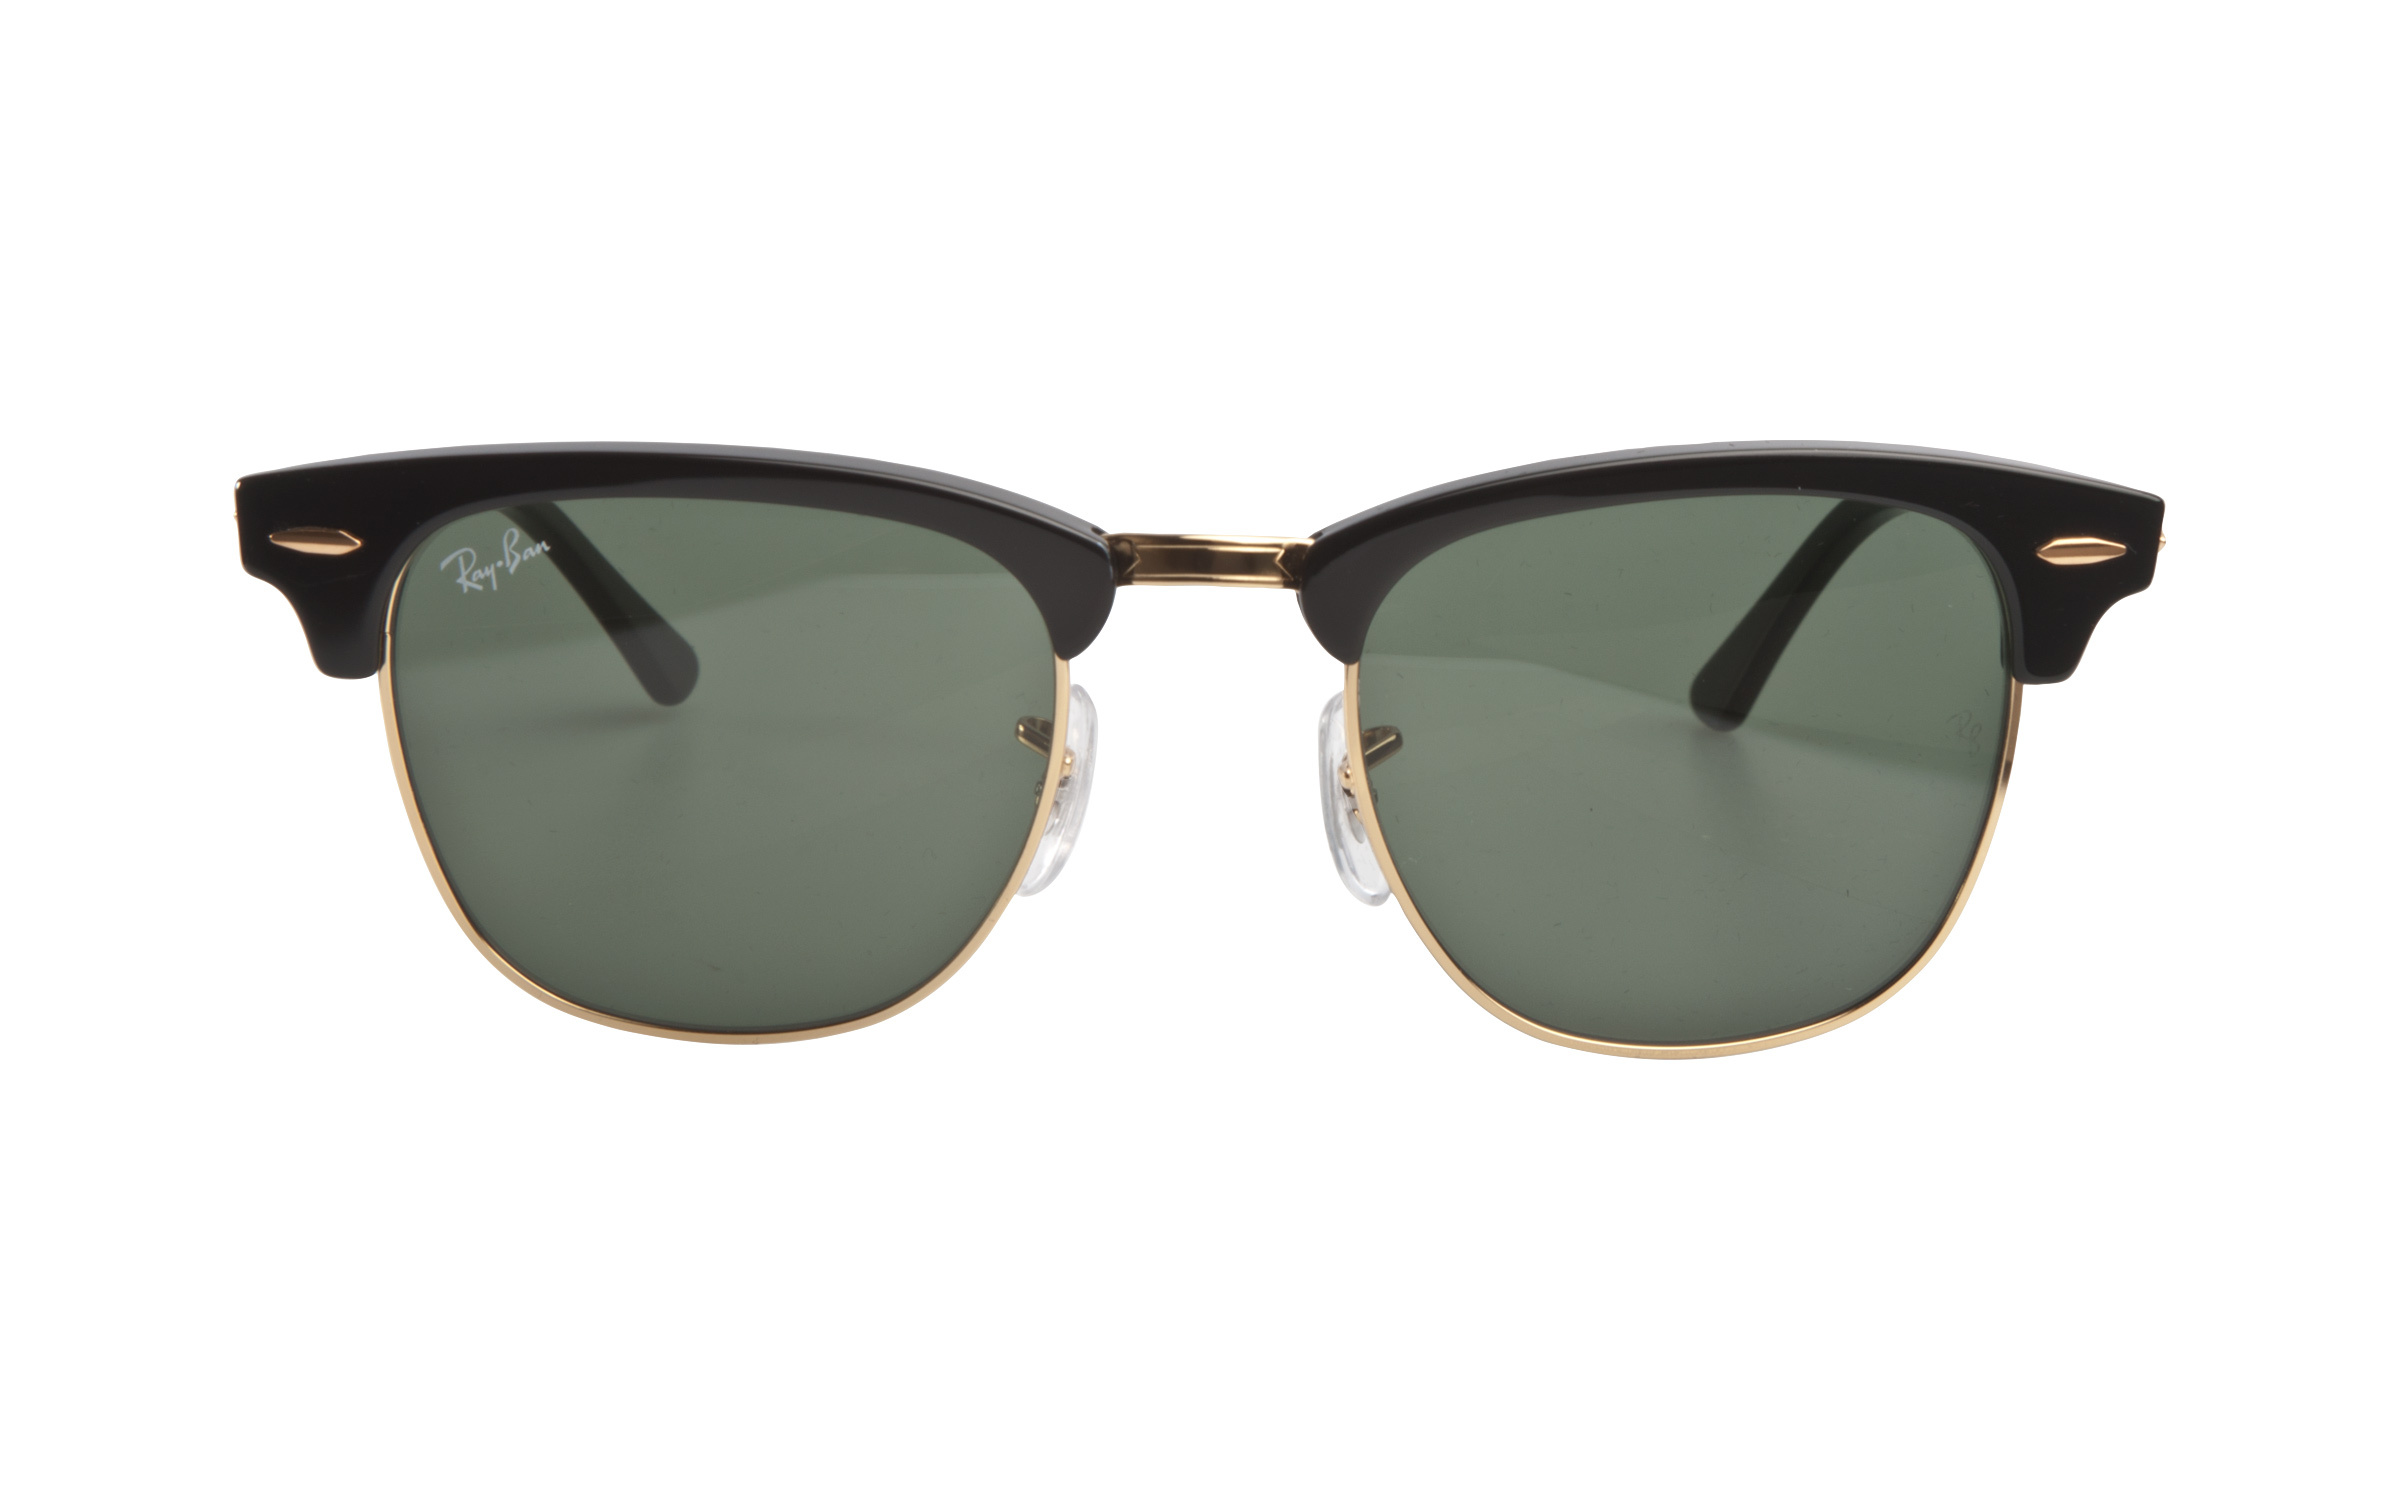 gold ray ban wayfarer  Shop for Ray-Ban sunglasses online with friendly service and a ...